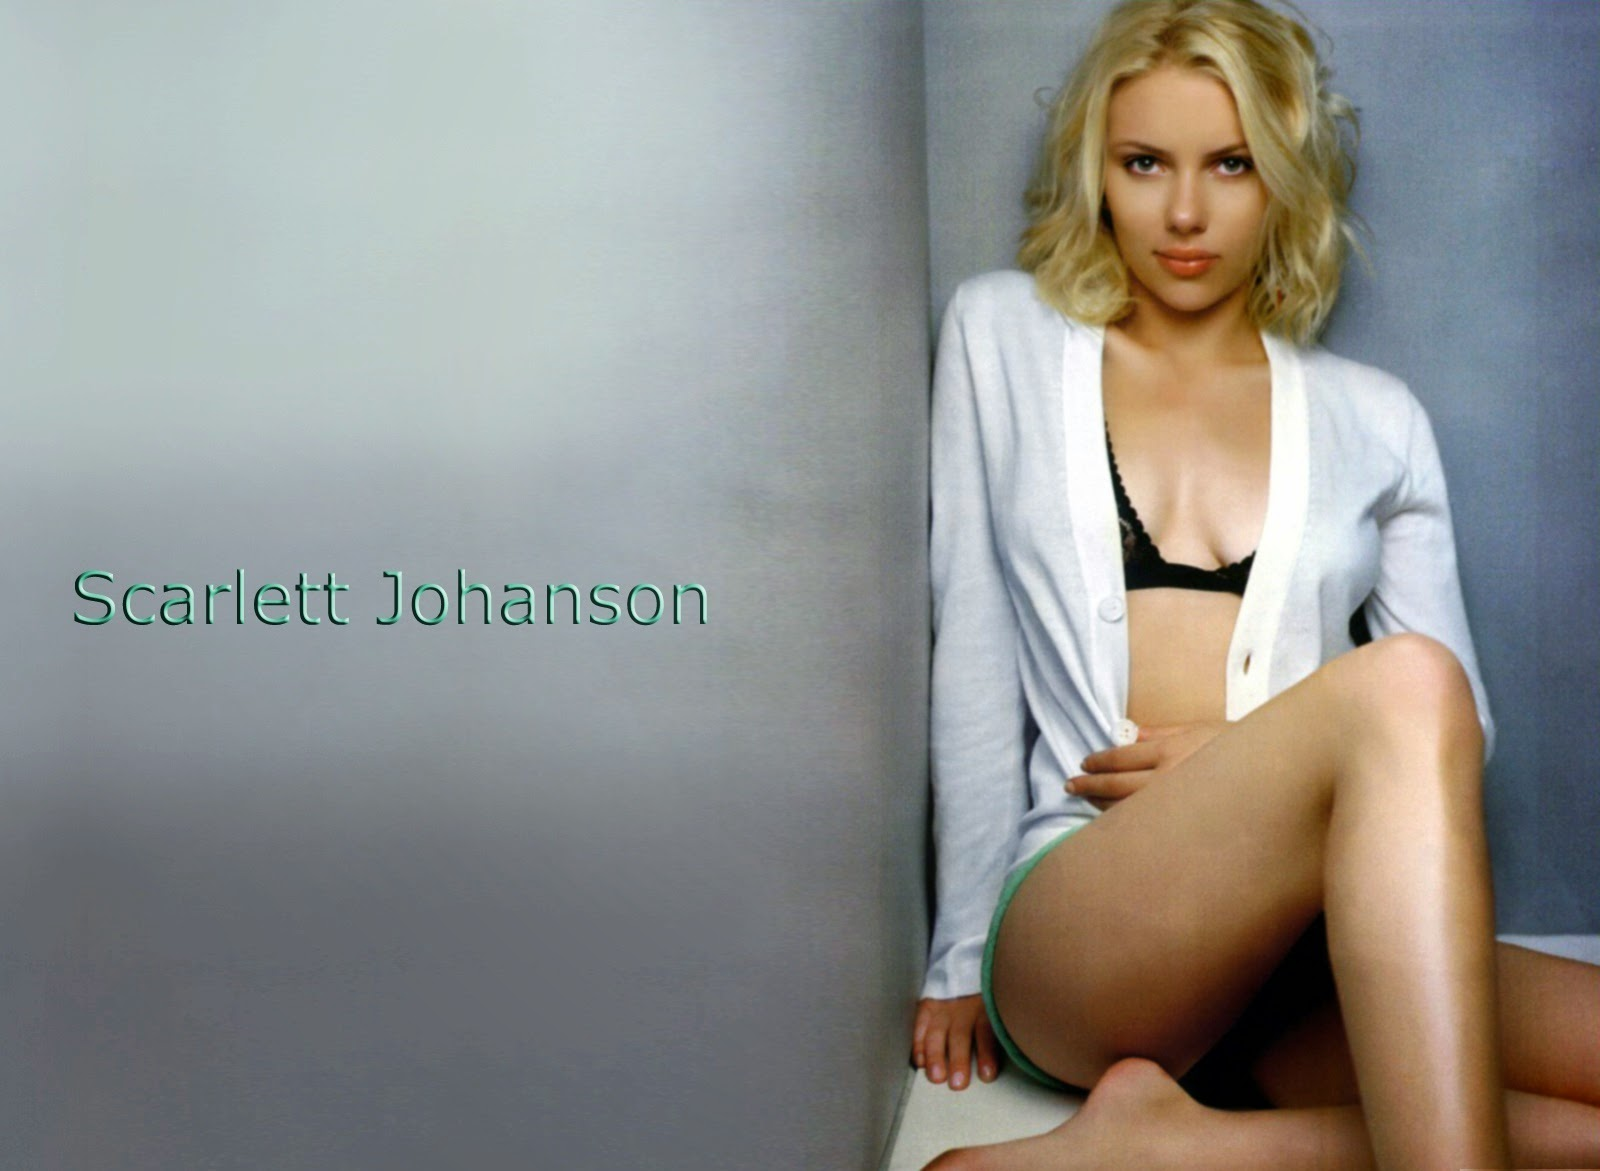 Scarlett Johansson Actress in Black Bra Without Cloths HD Images